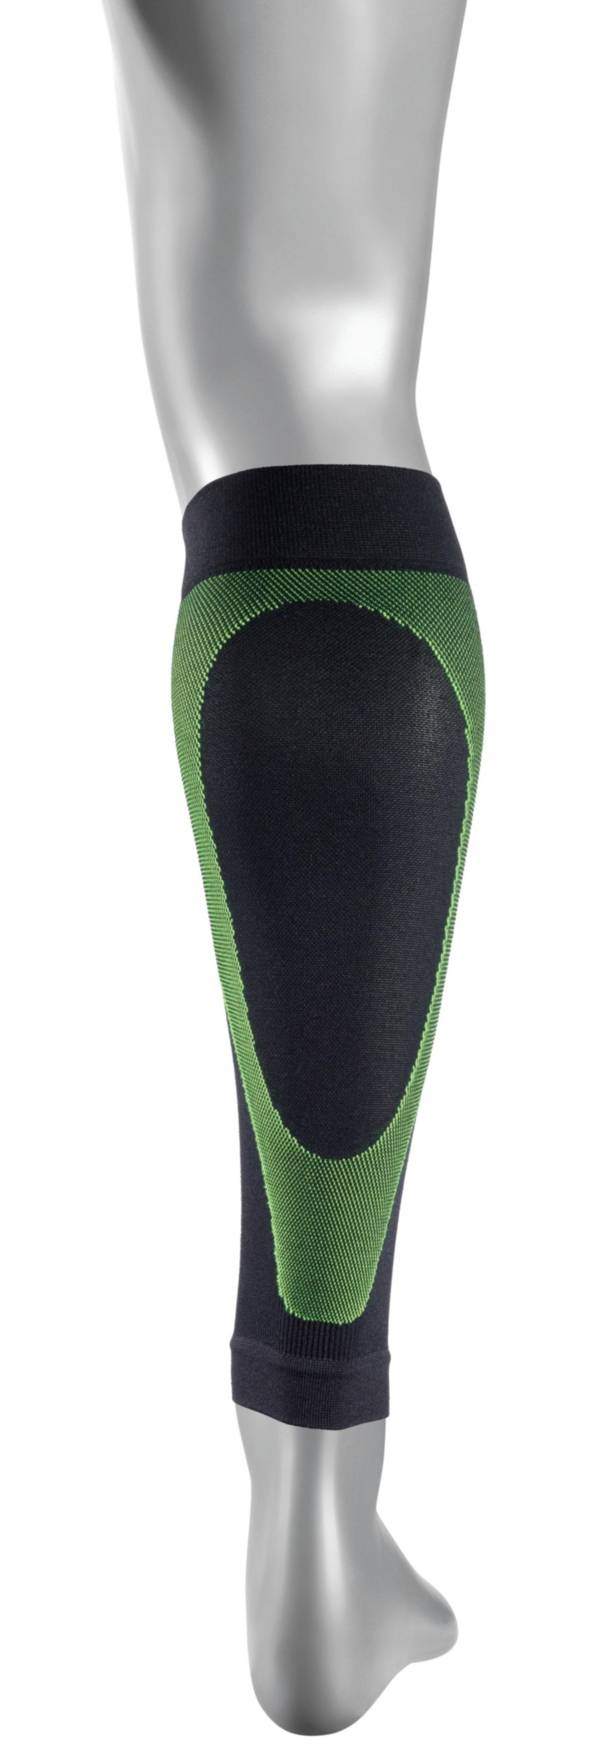 P-TEX Knit Compression Calf Sleeves product image